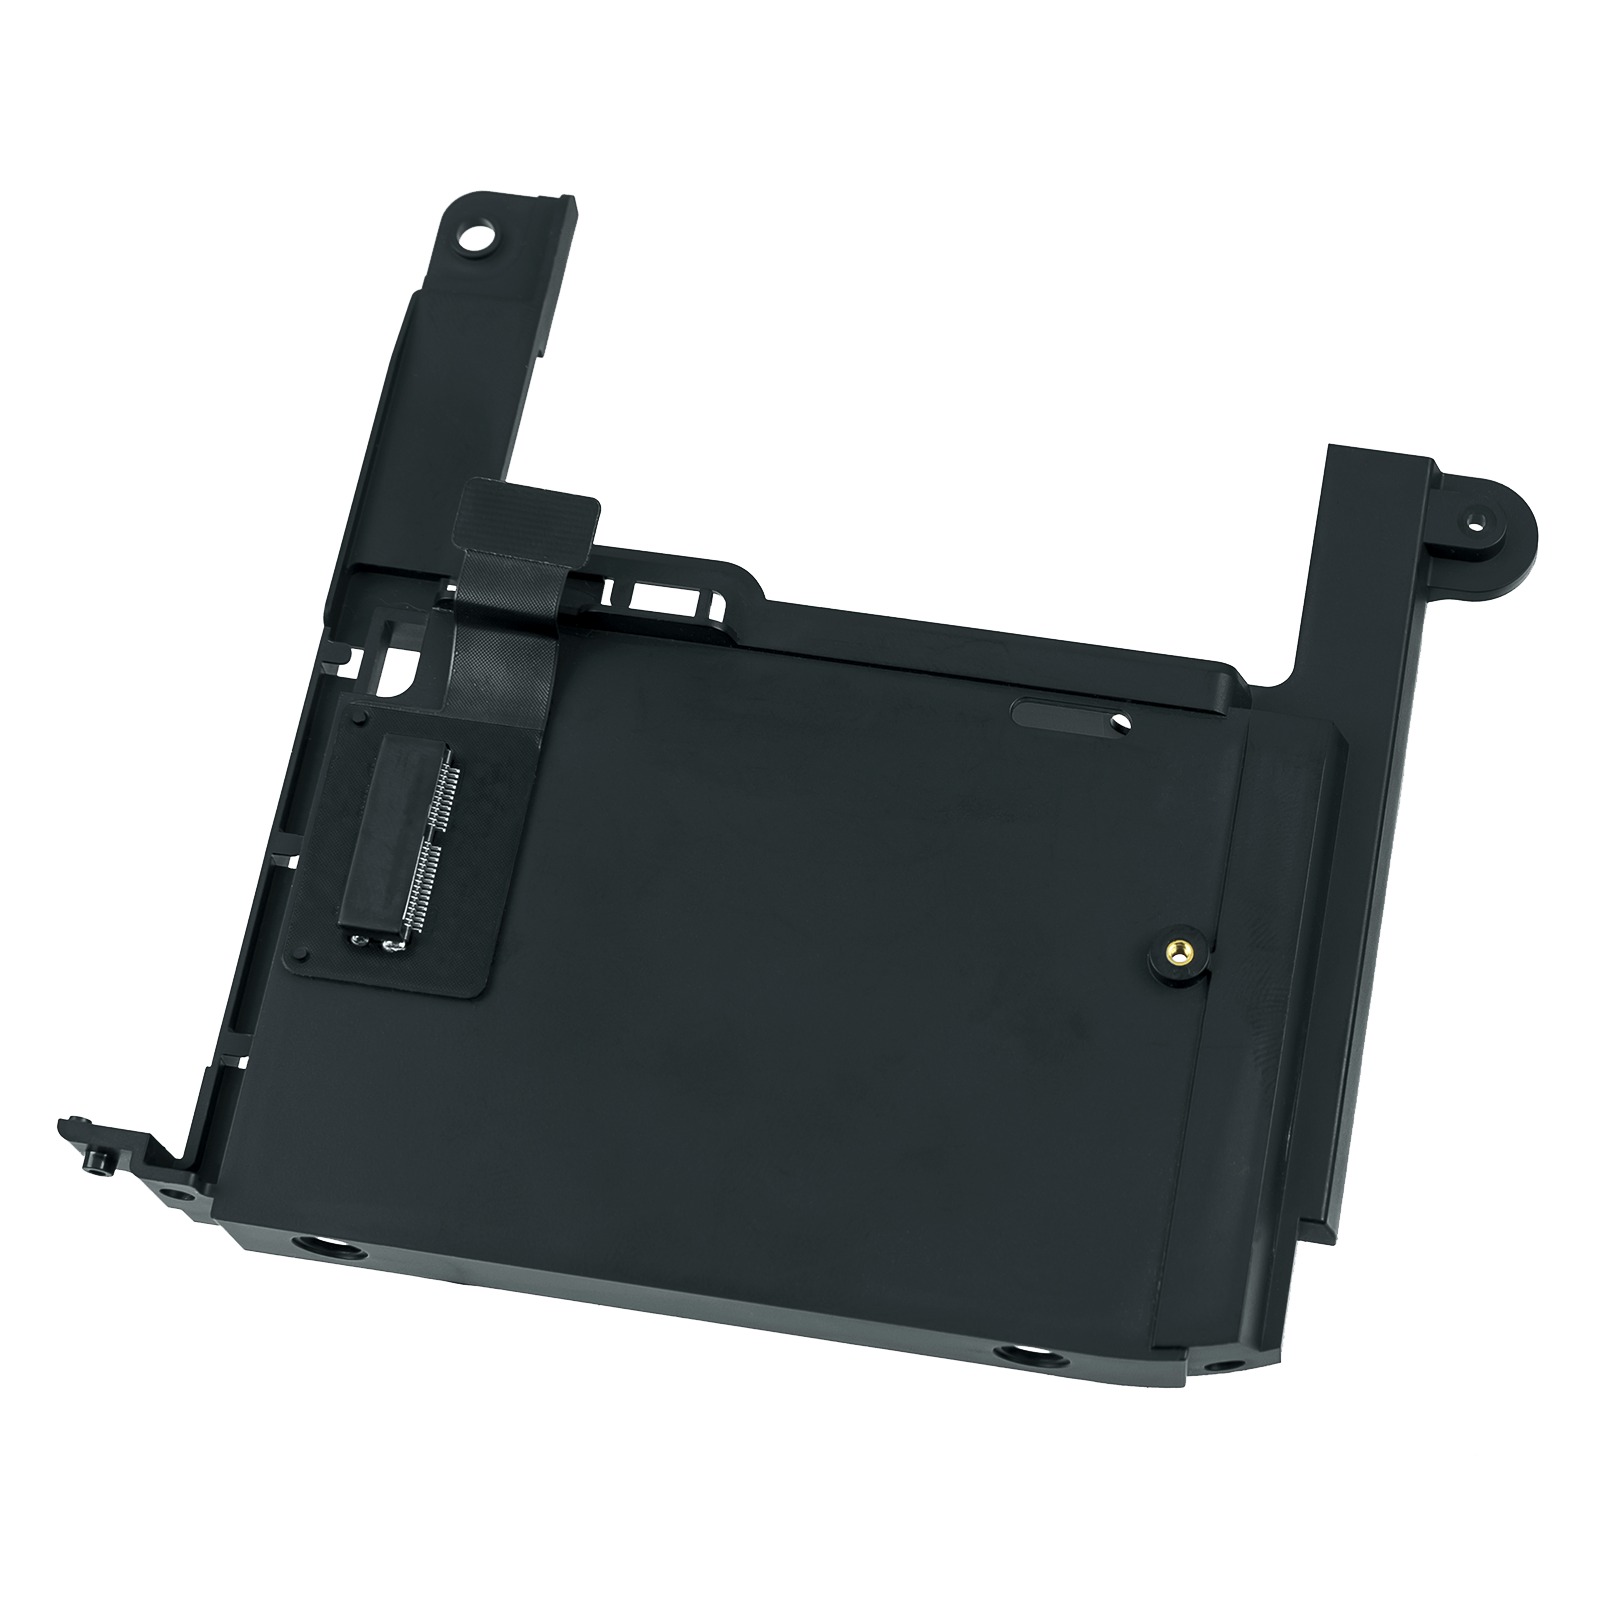 Hard Drive Carrier with SSD Connector